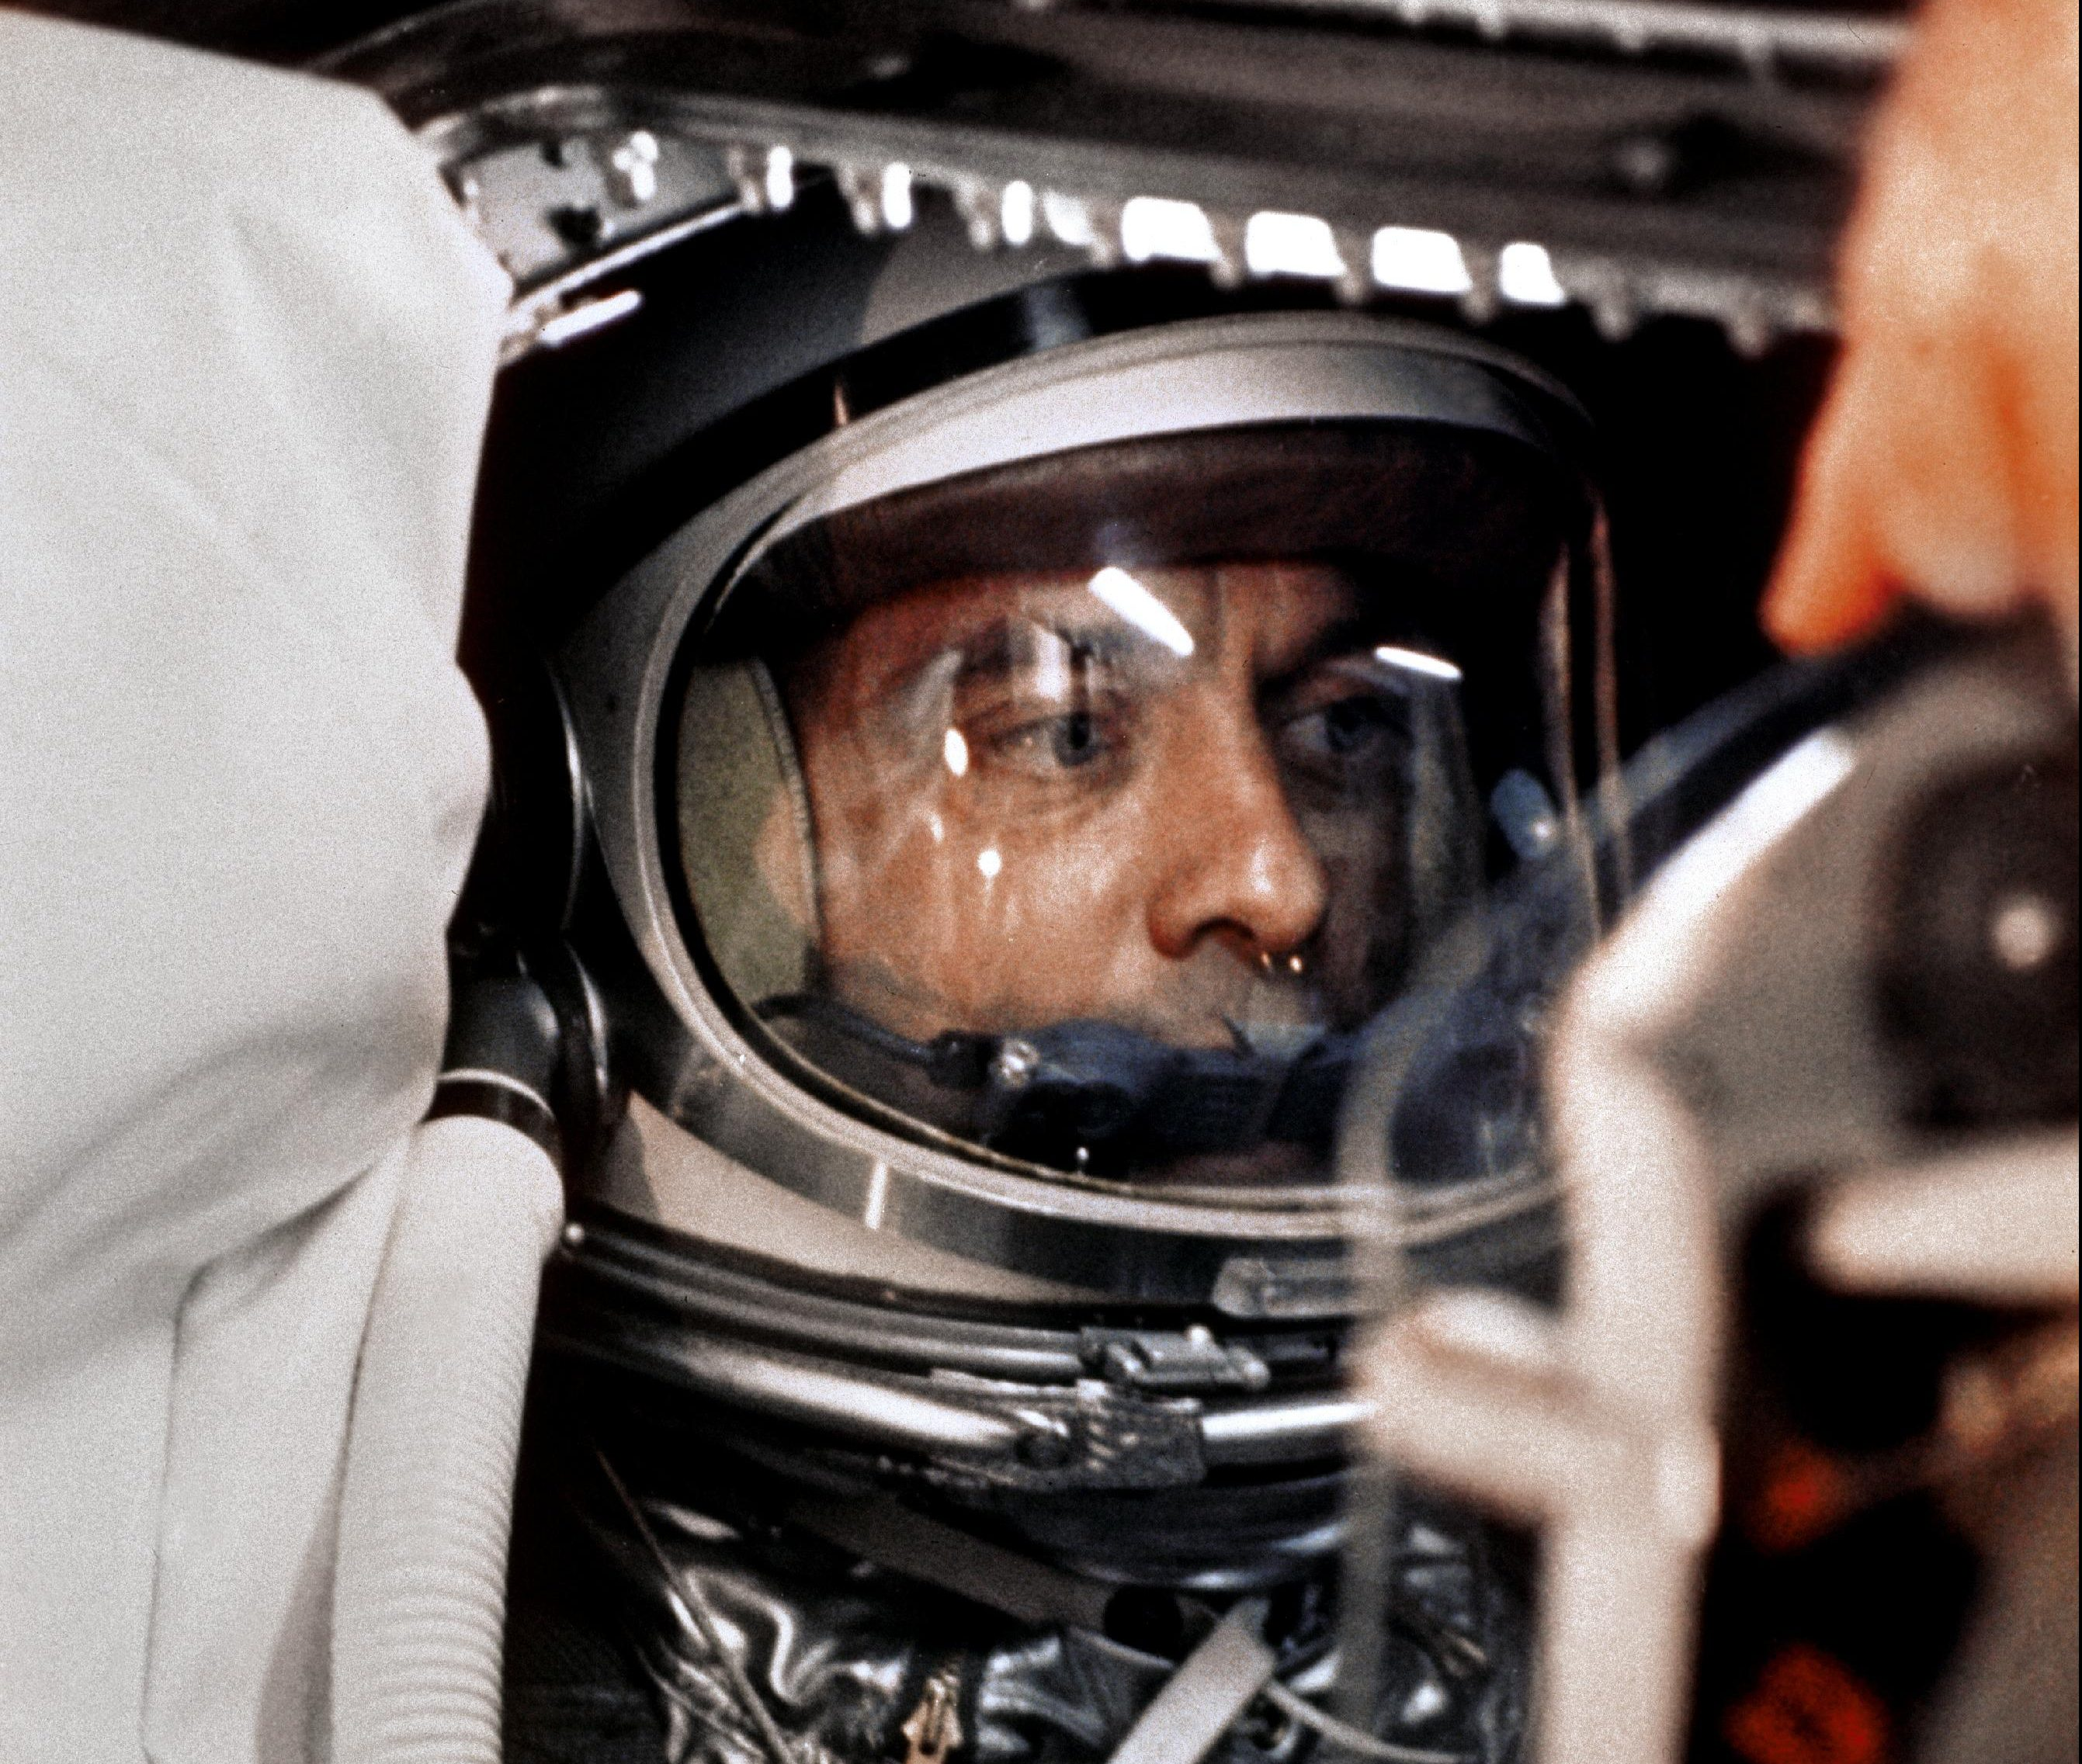 """Don Draper in a Spacesuit"" - The Life of Alan Shepard